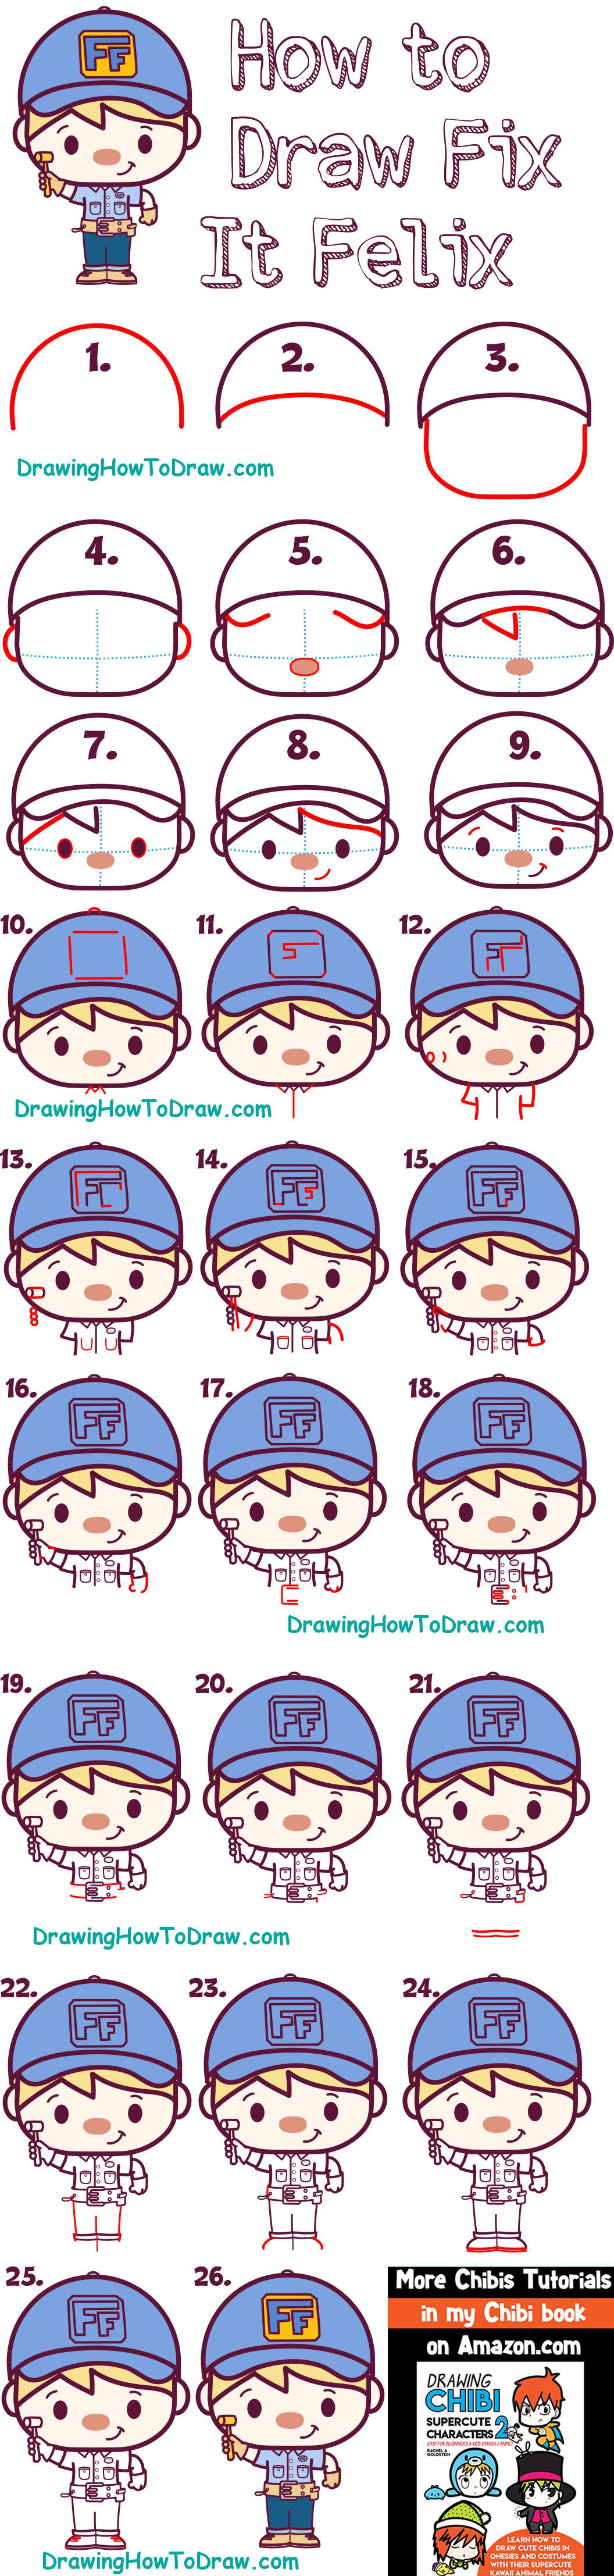 How to Draw Cute Kawaii Chibi Fix-it Felix from Wreck it Ralph 2 - Easy Steps for Kids